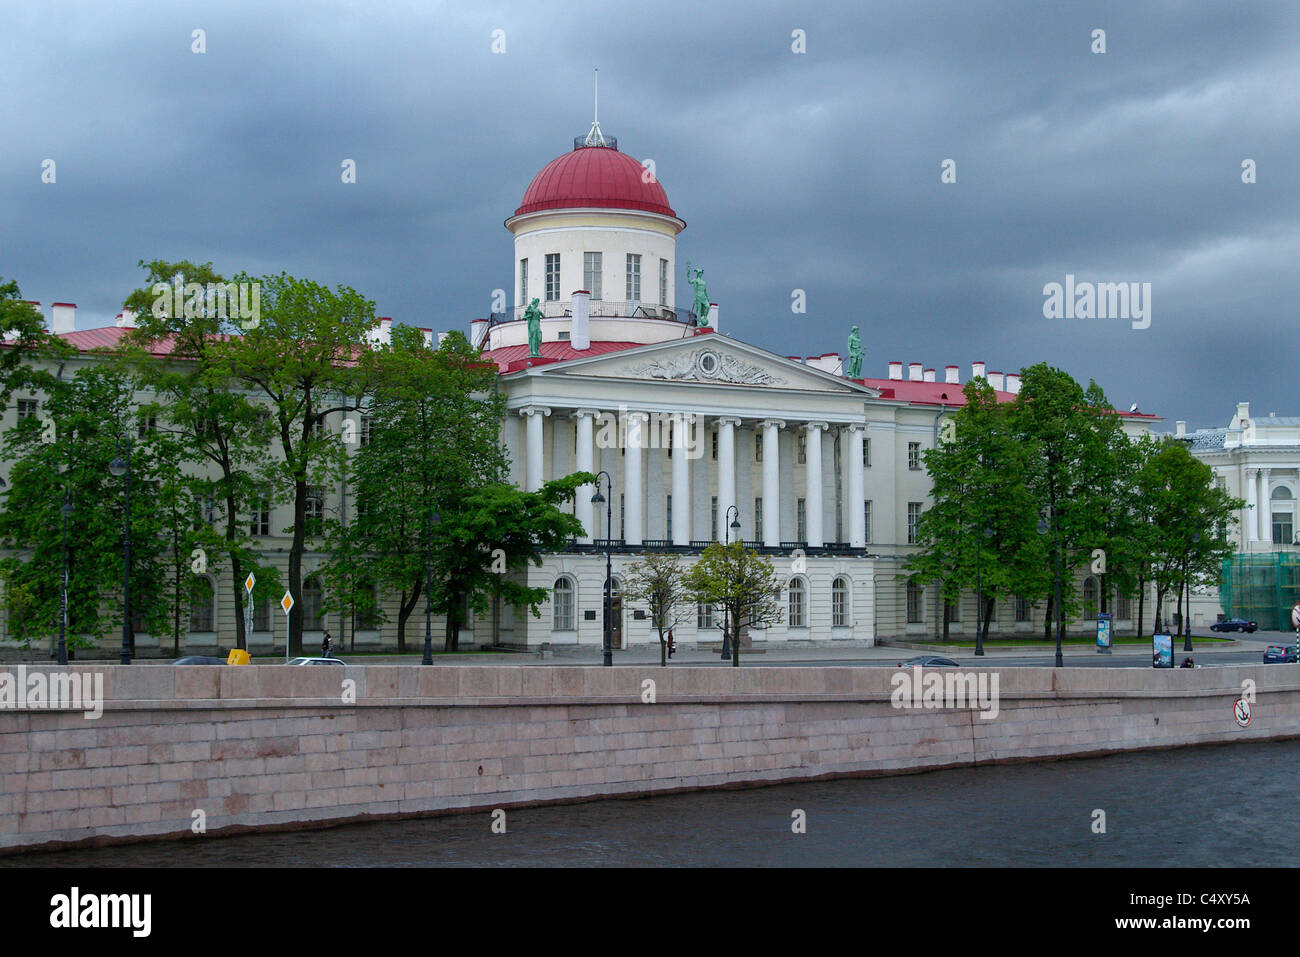 Russia. St. Petersburg. Academy of Sciences Institute of Russian Literature (Pushkin House). - Stock Image